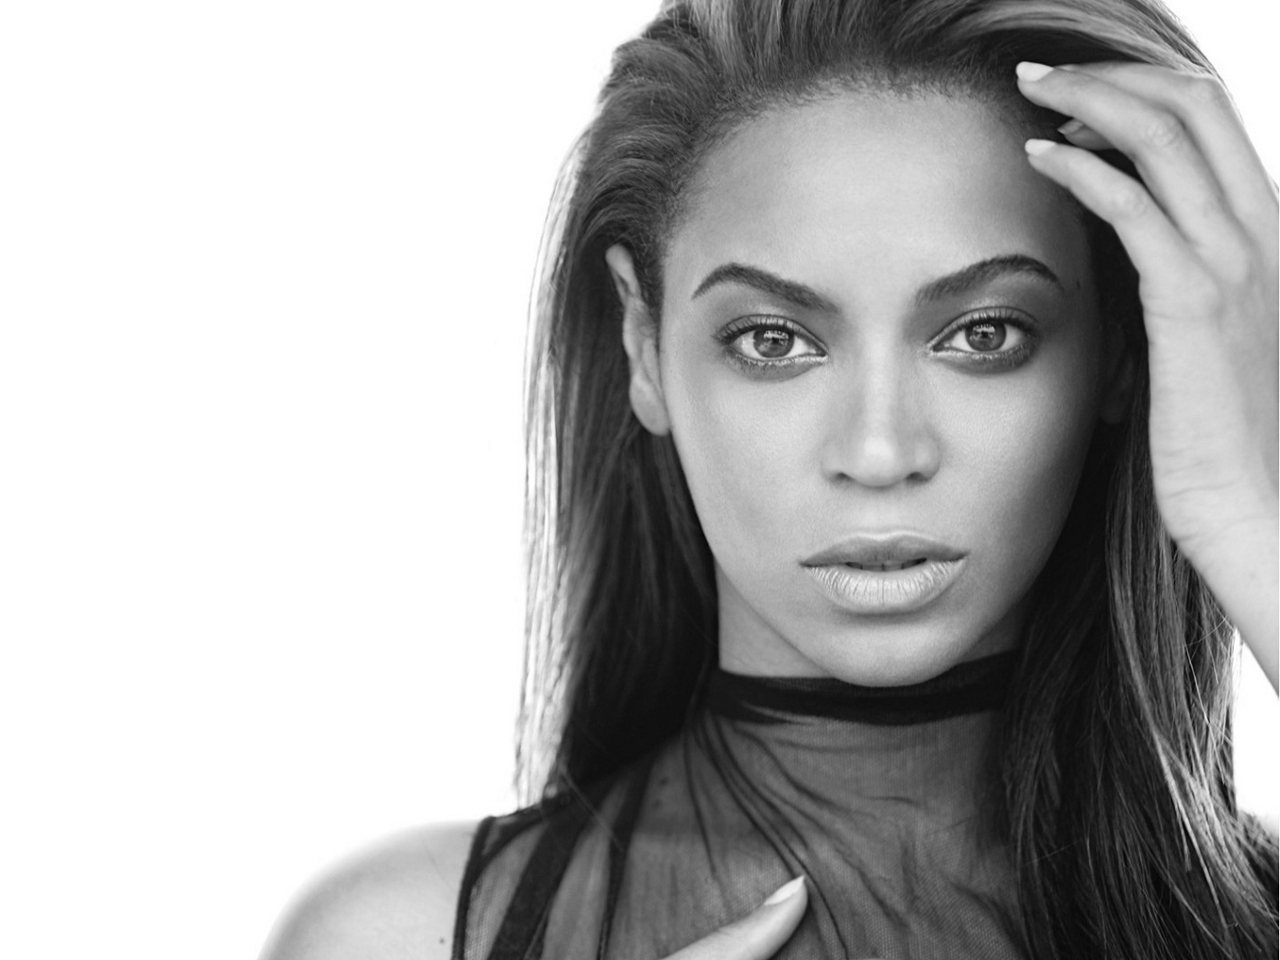 Beyonce Black and White Photoshoot 209.37 Kb